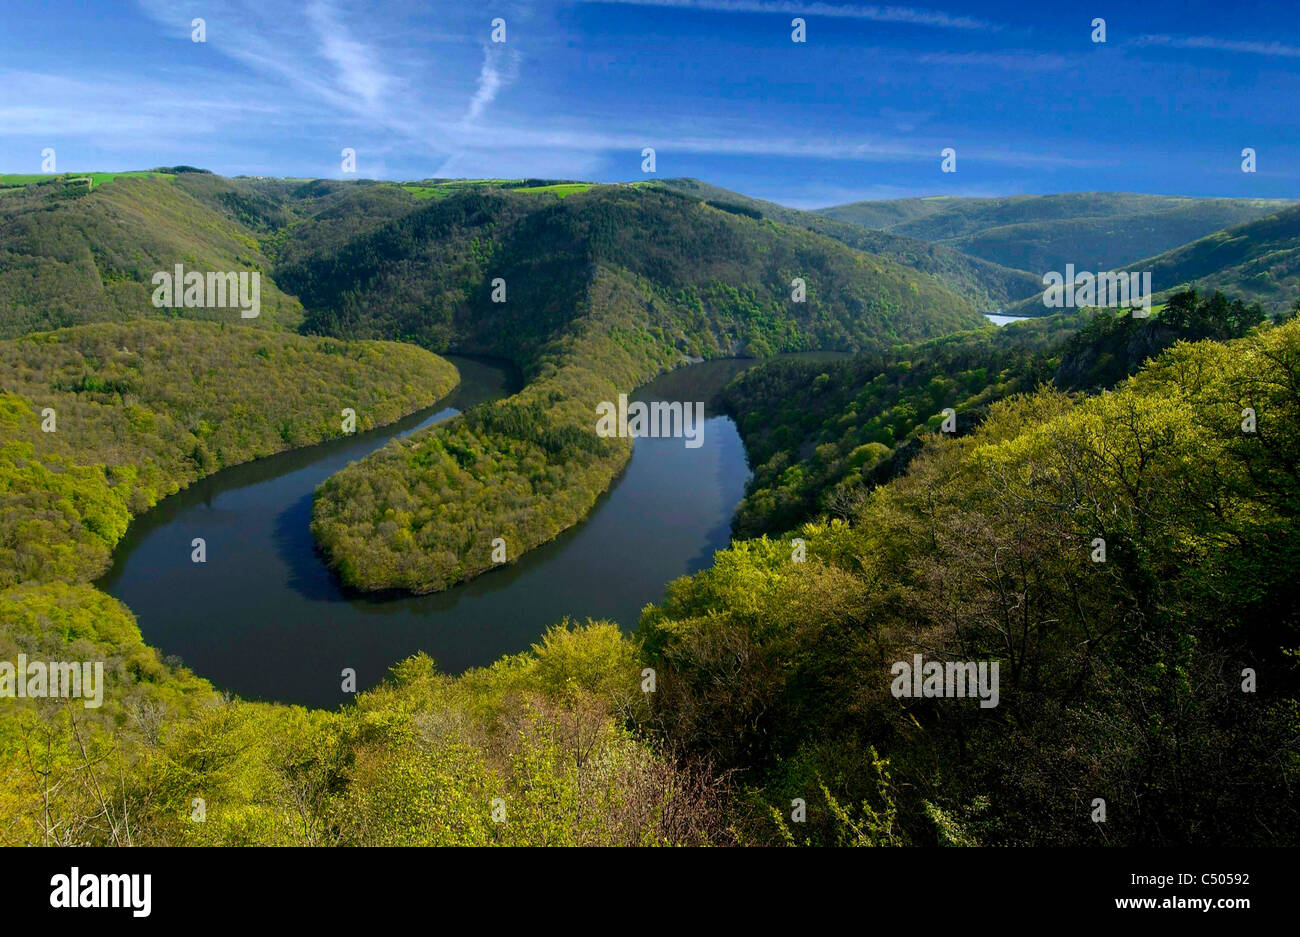 Meander of Queuille, Auvergne, France. - Stock Image